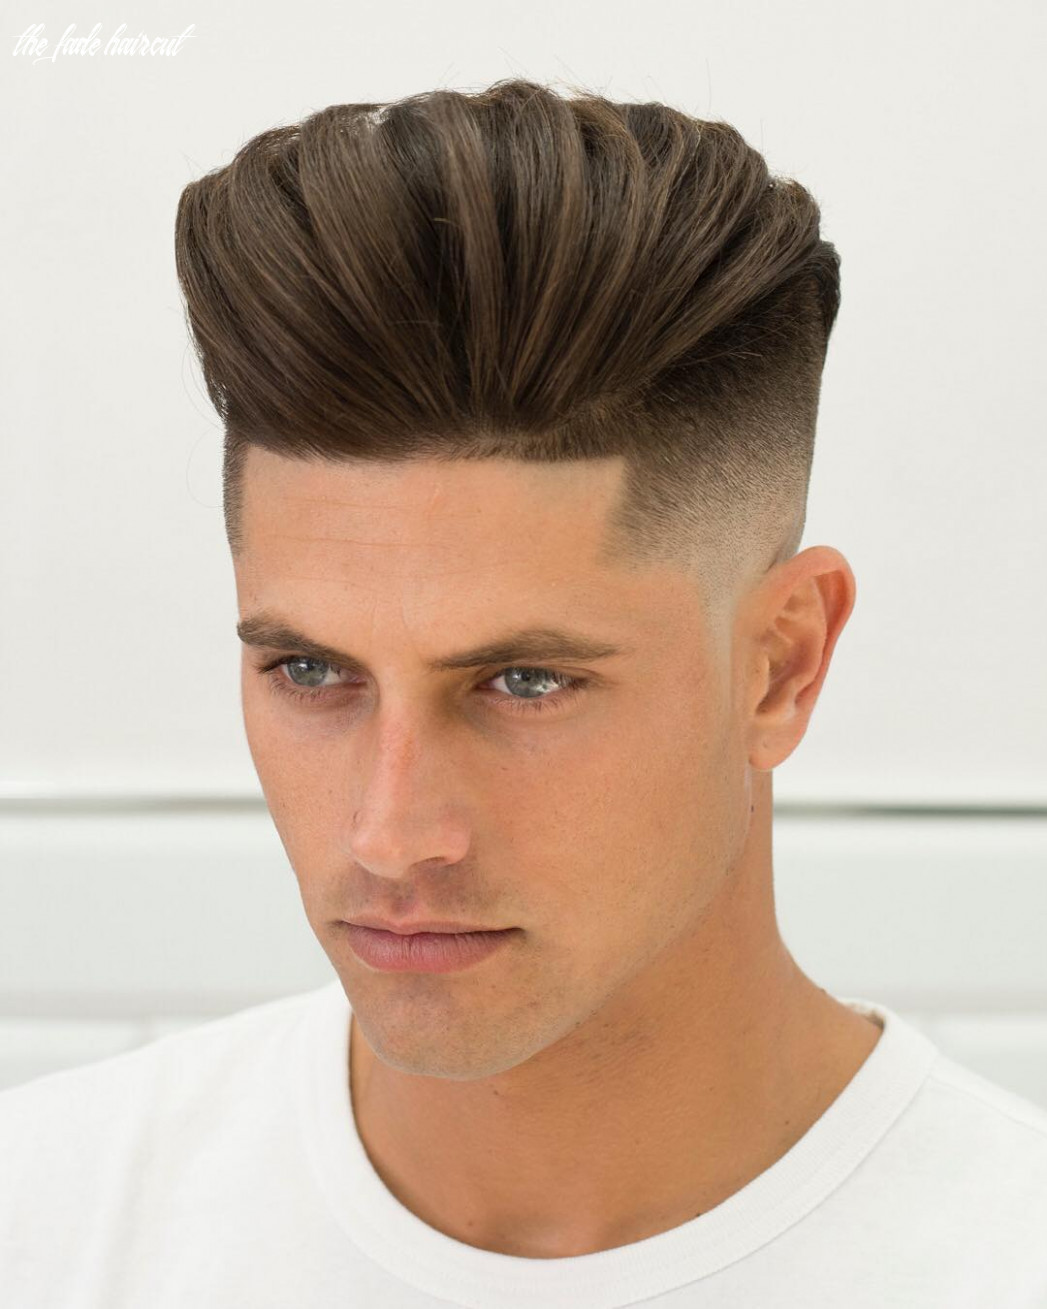 Top 12 fade haircuts for men (12 styles) the fade haircut